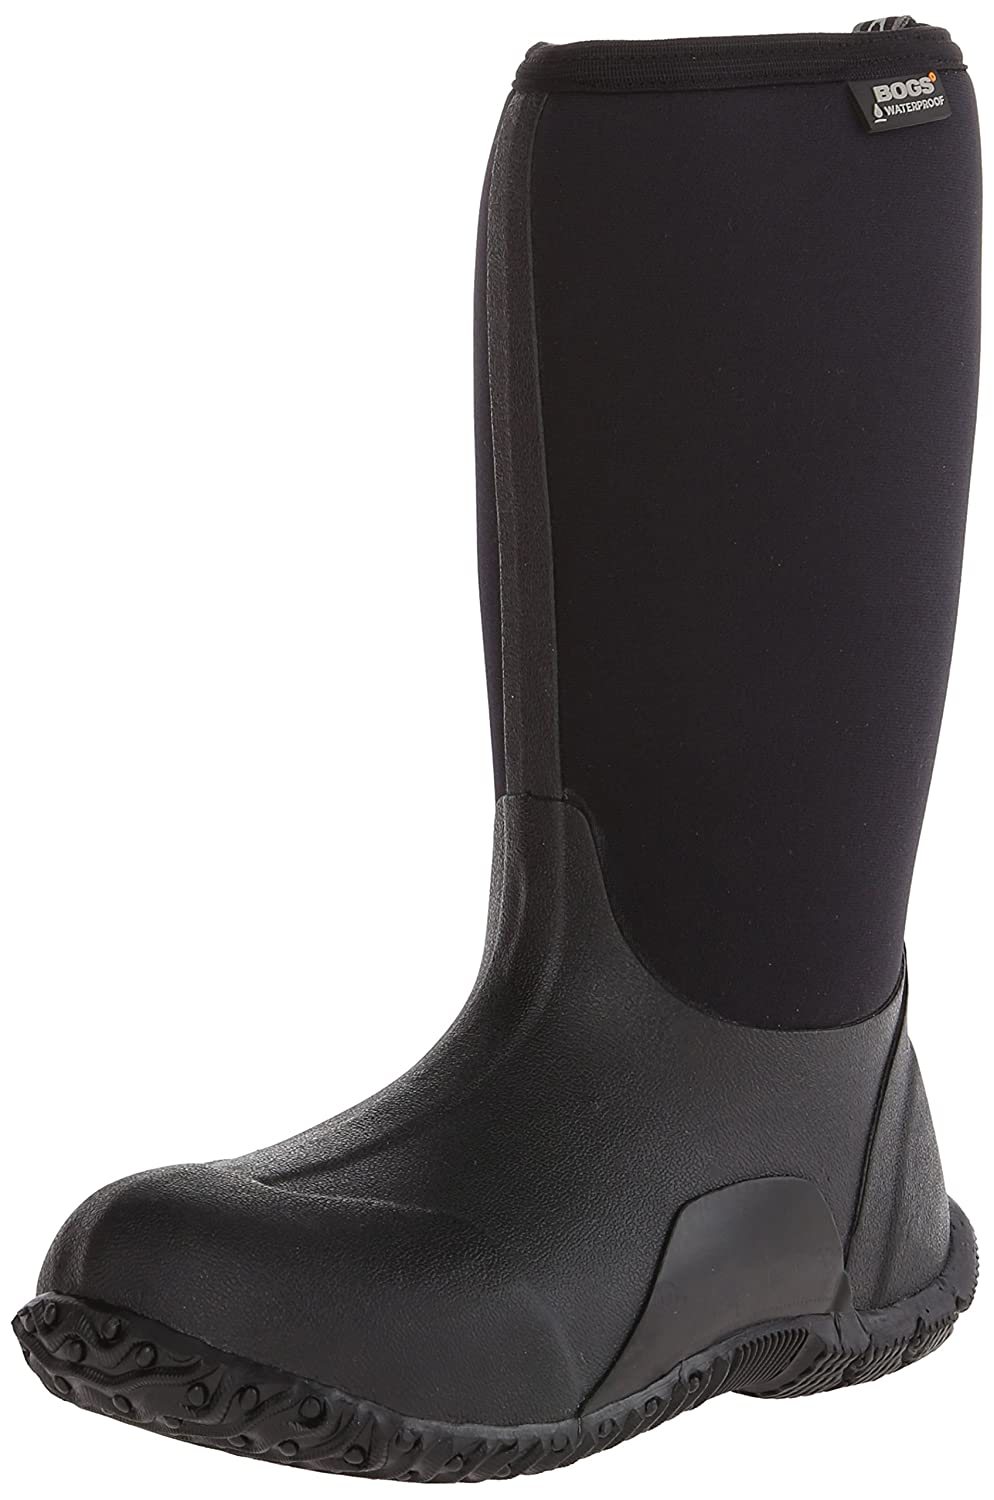 Gummistiefel Bogs Classic High Handle Kids-Schuhgröße 30